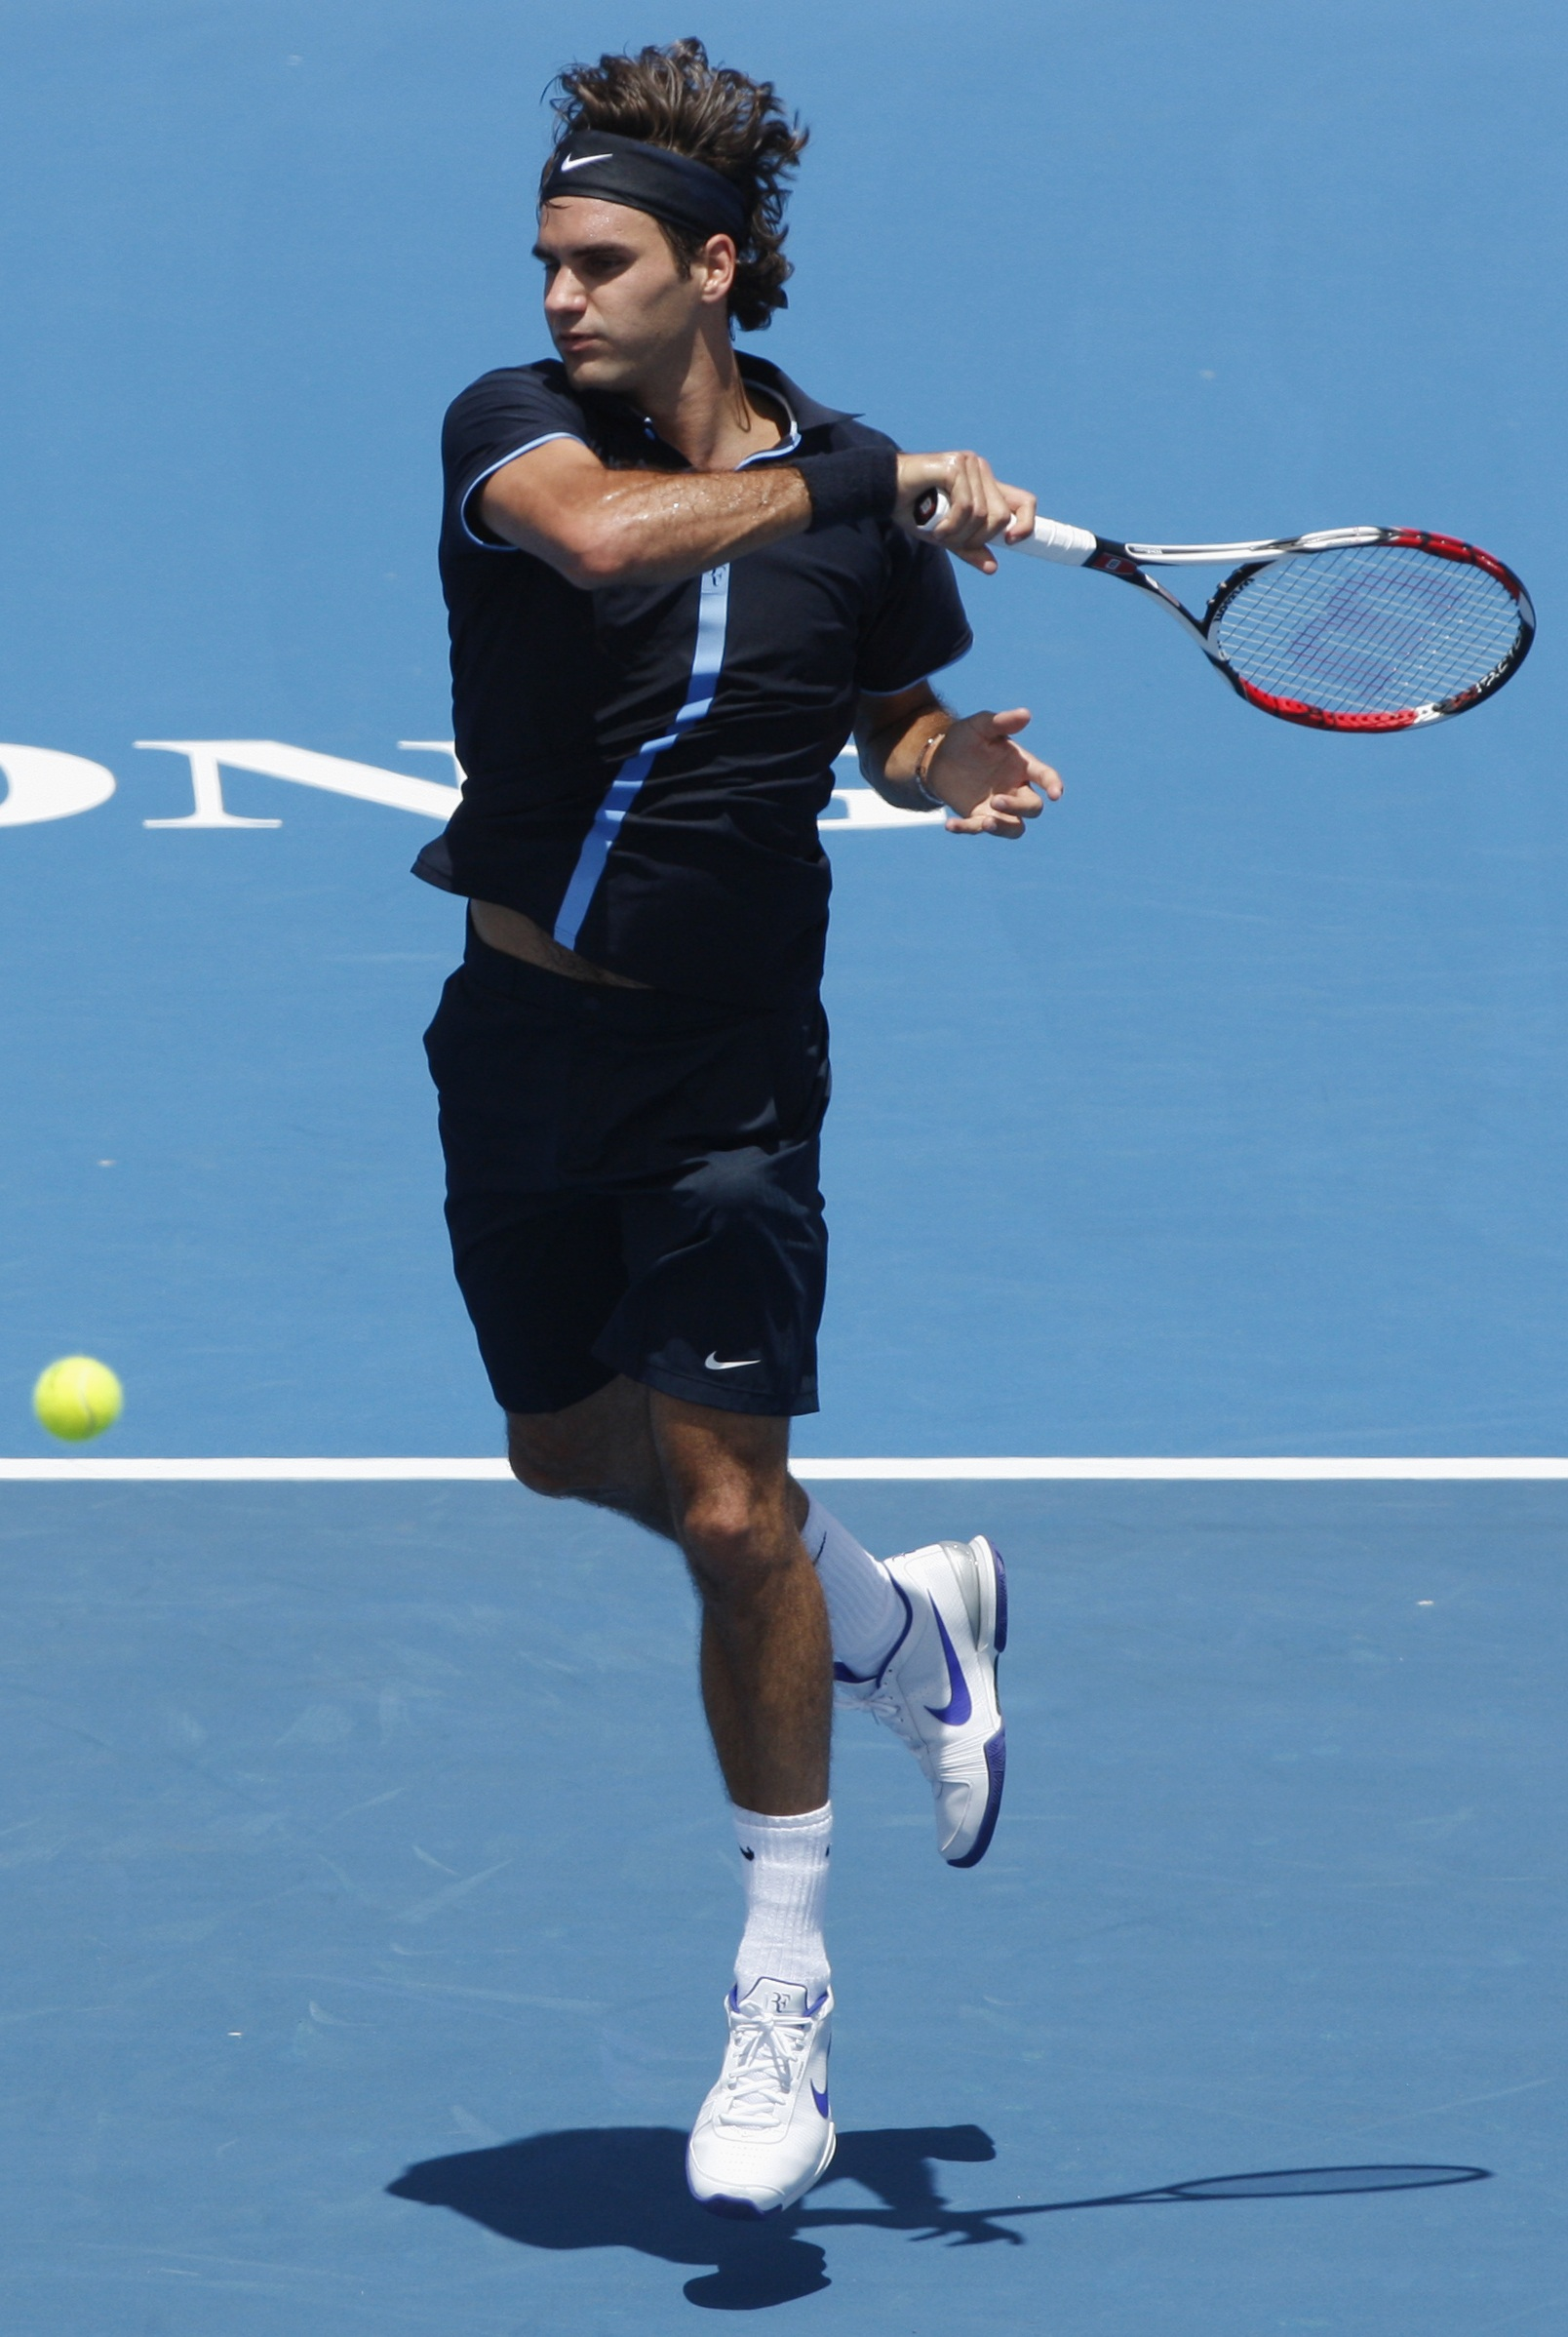 Switzerland's Roger Federer hits a forehand to Spain's Carlos Moya at the Kooyong Classic tennis tournament in Melbourne, Australia yesterday.